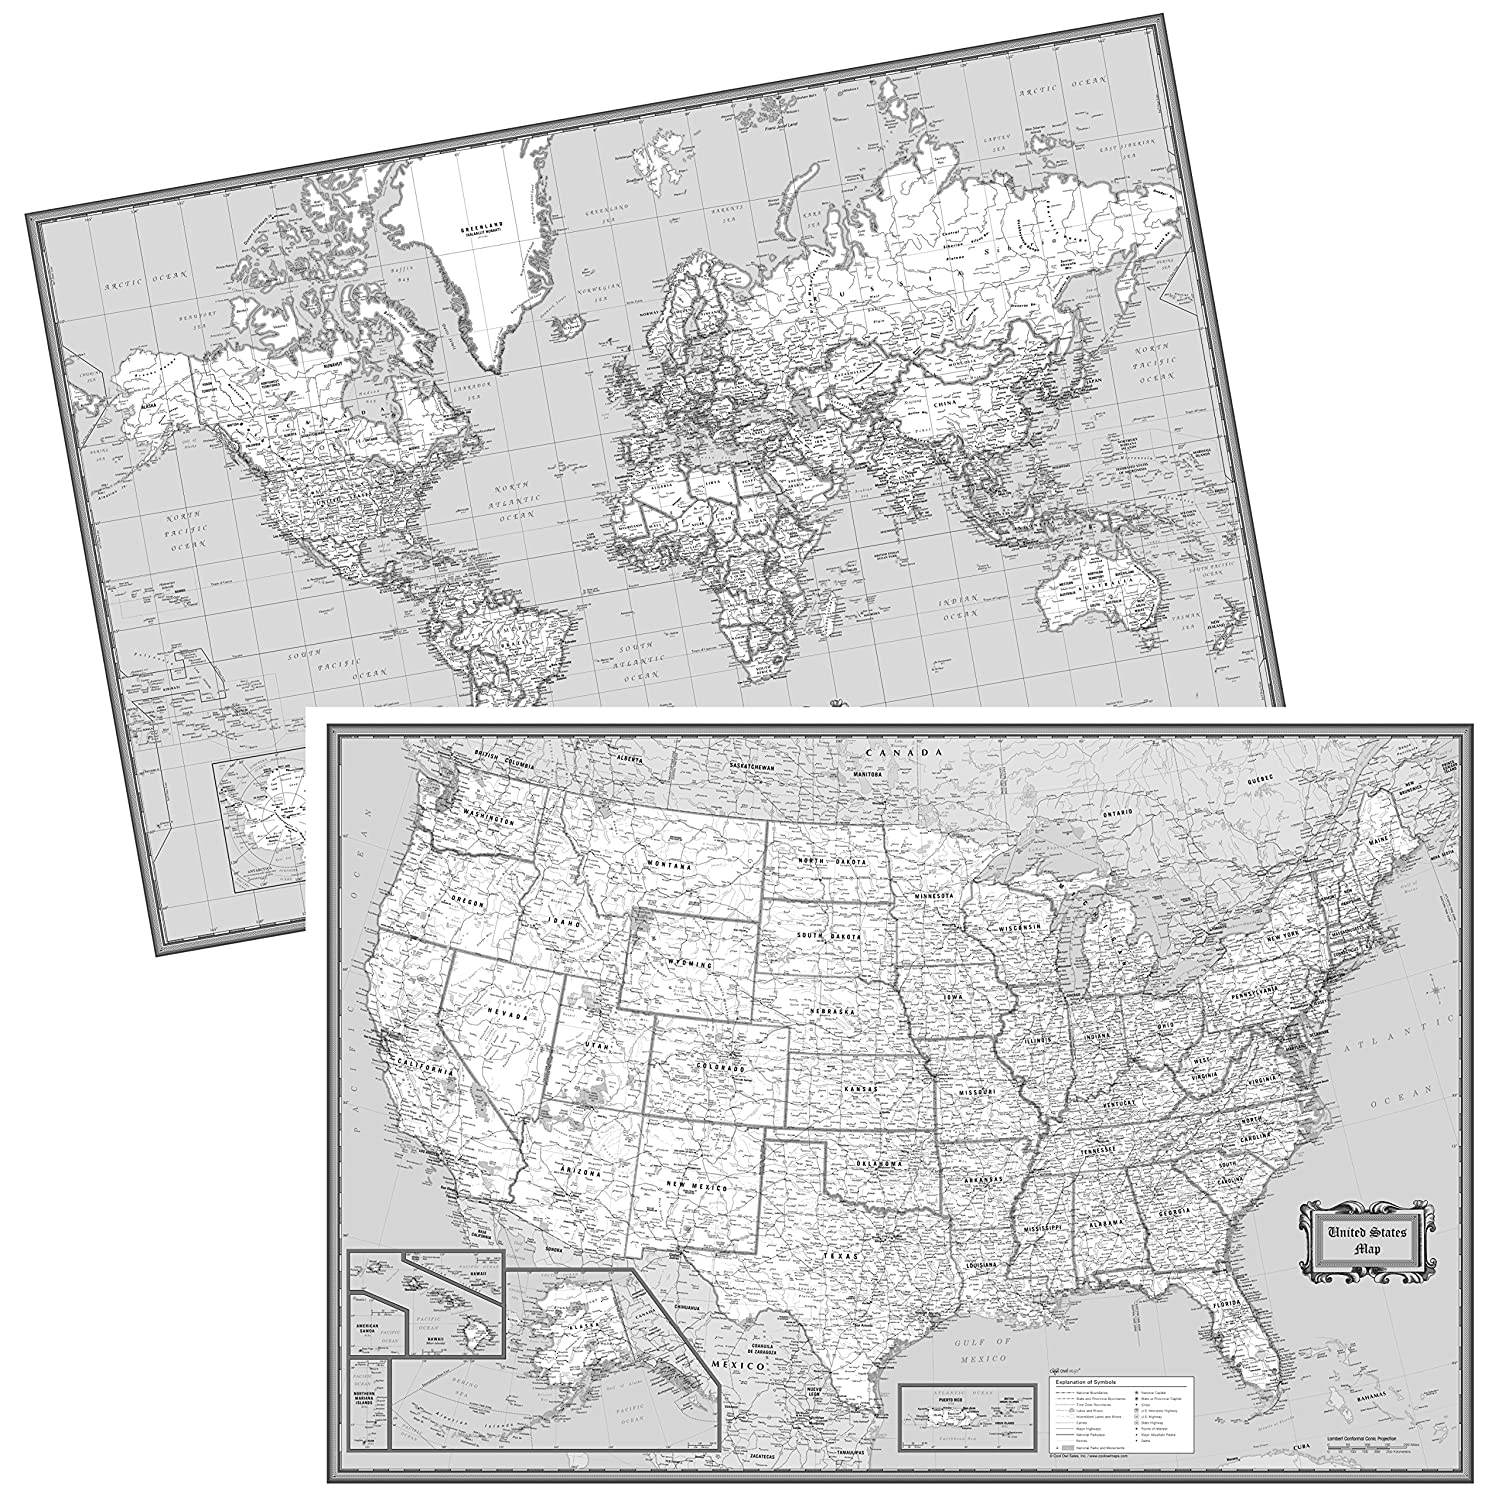 Amazoncom CoolOwlMaps United States World Wall Maps Black - Black and white us map with states